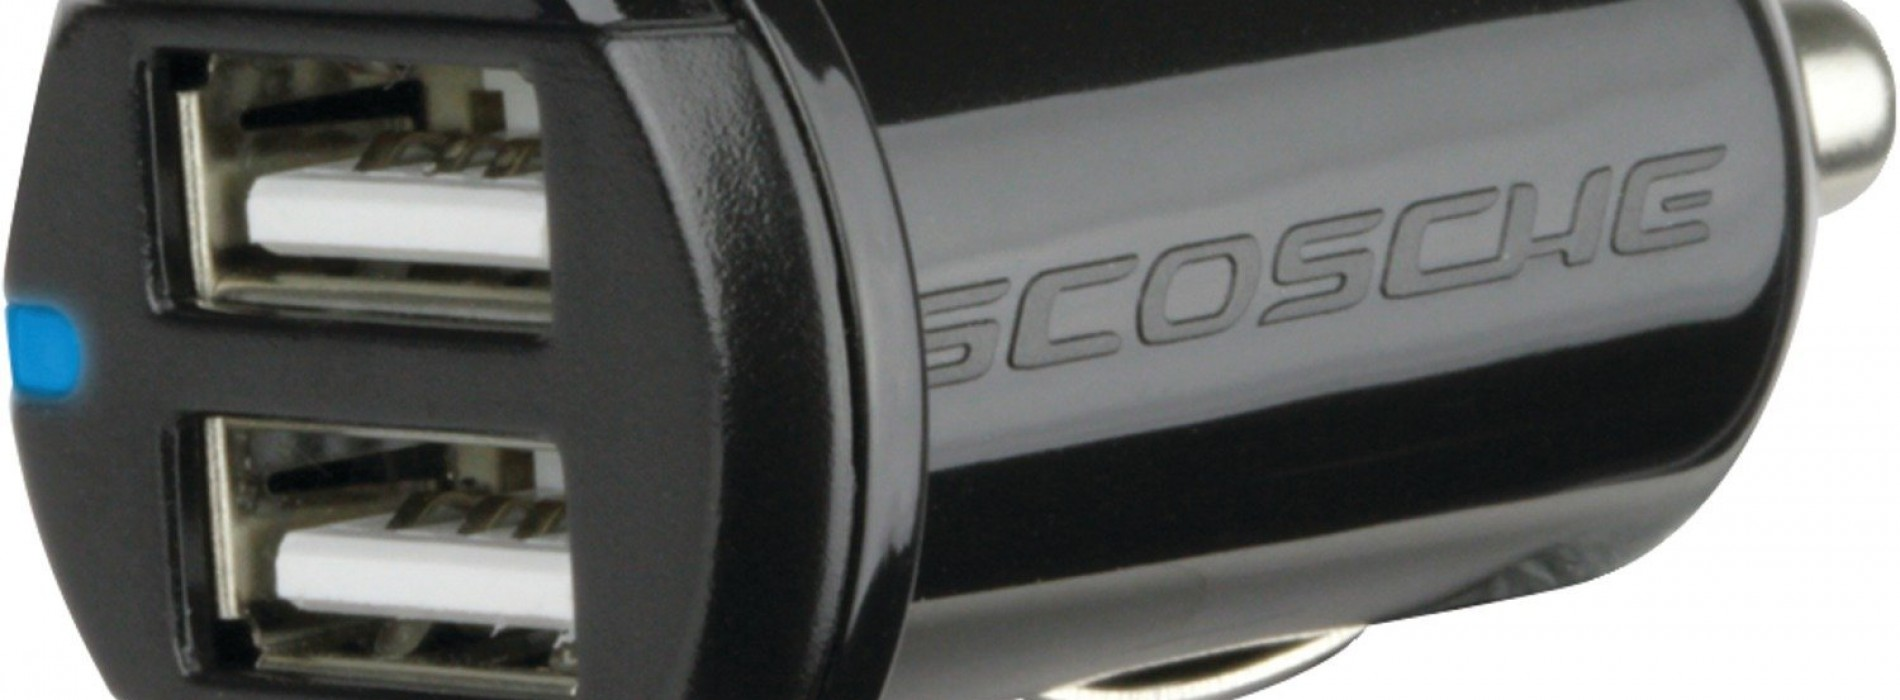 Accessory of the Day: Scosche dual 12 Watt USB car charger